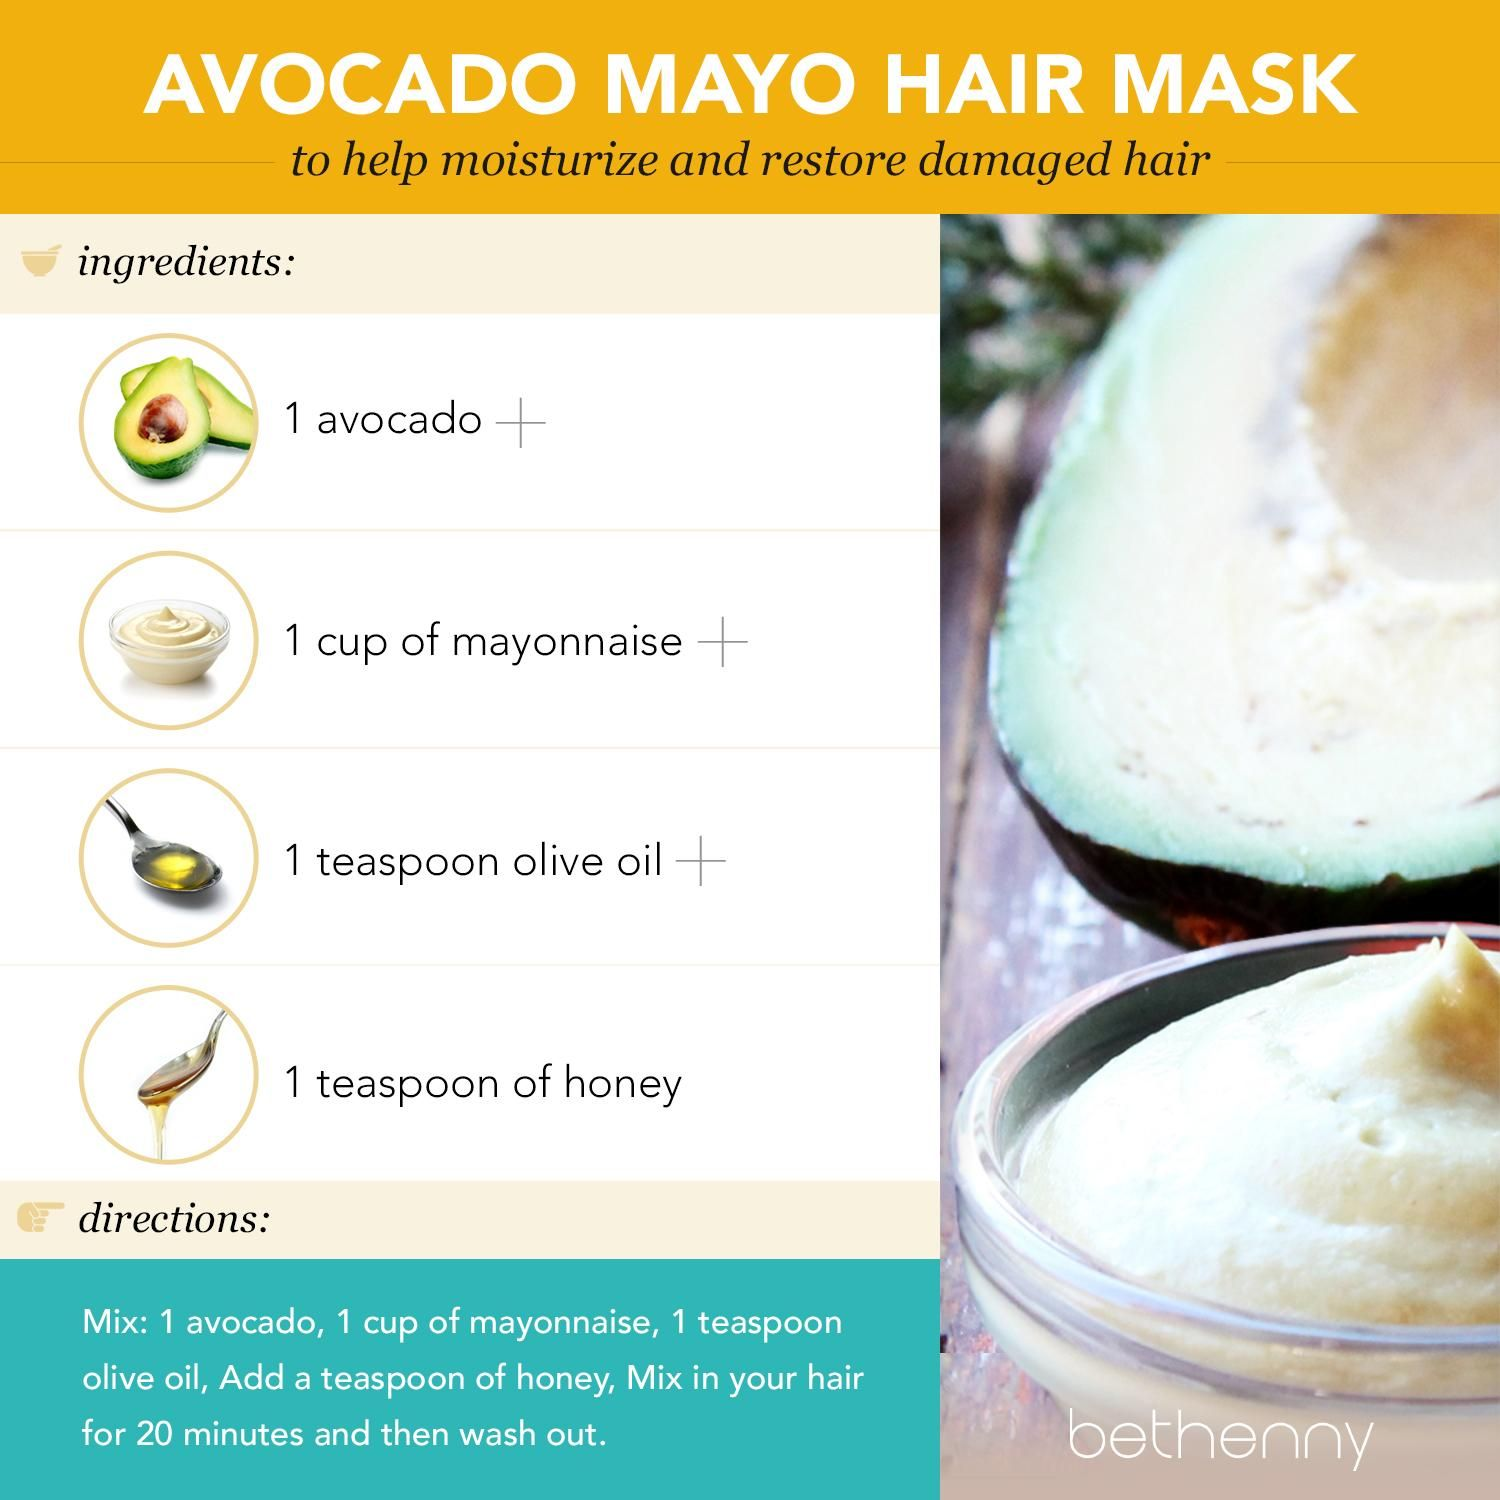 Buy Hair homemade mask recipes that really work picture trends